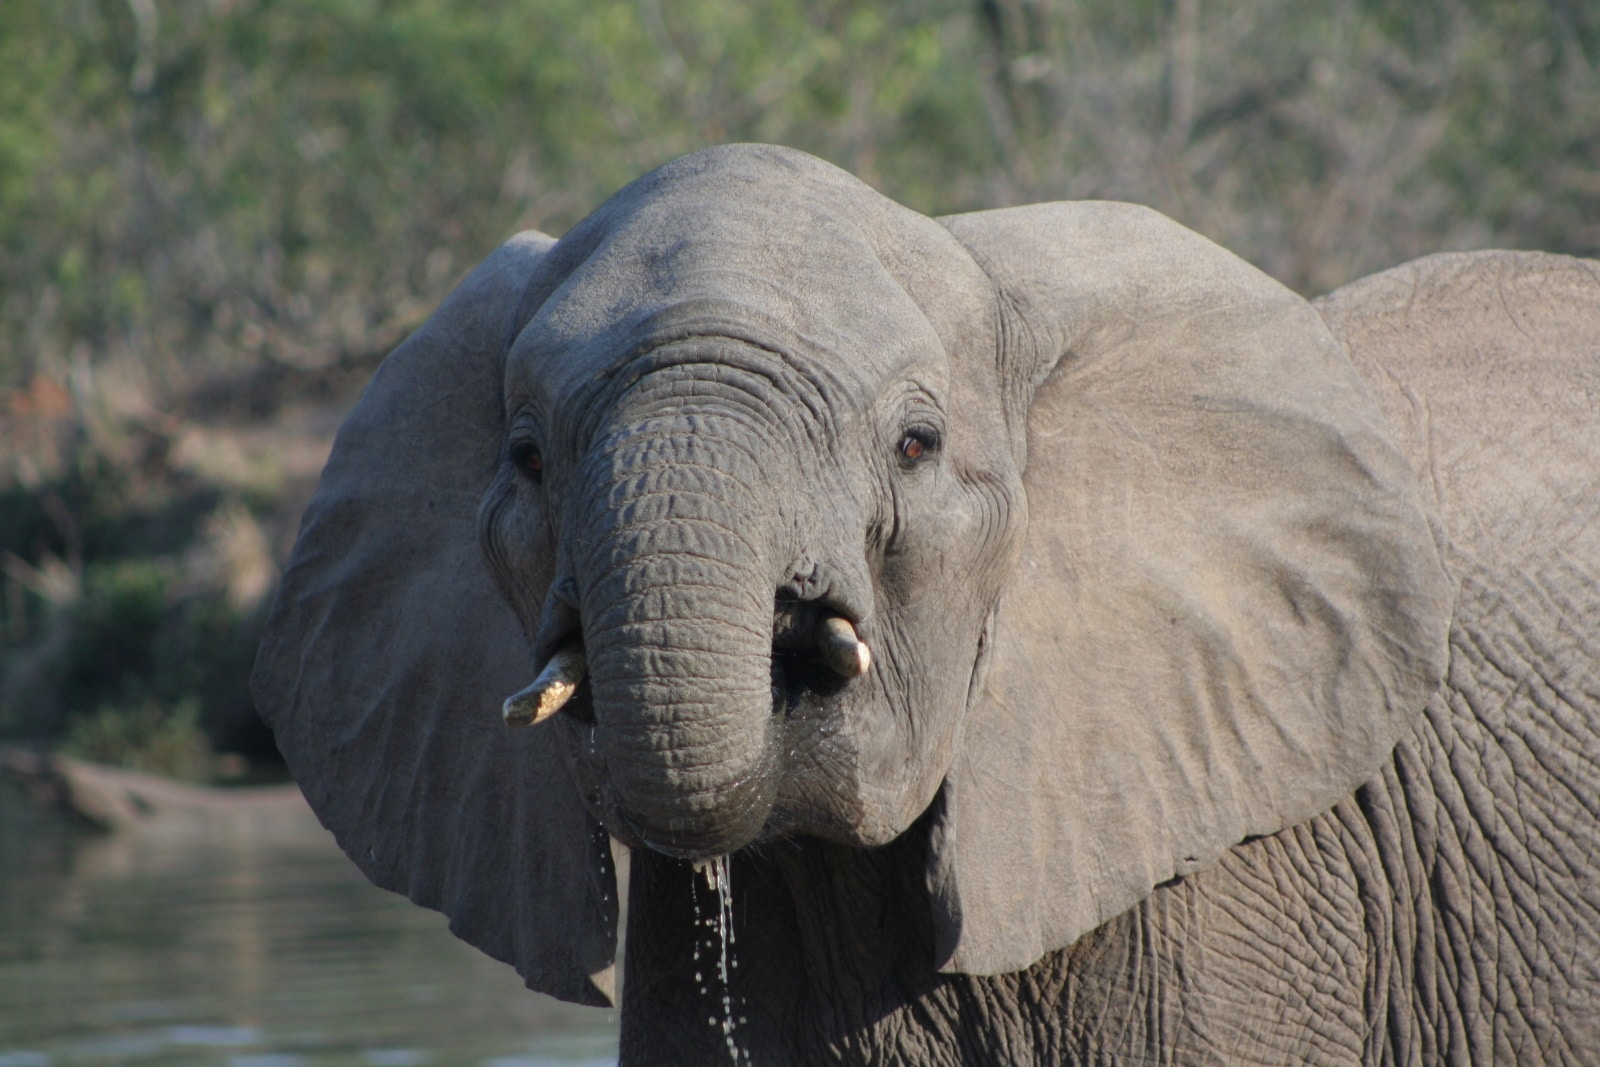 A close up of African elephant